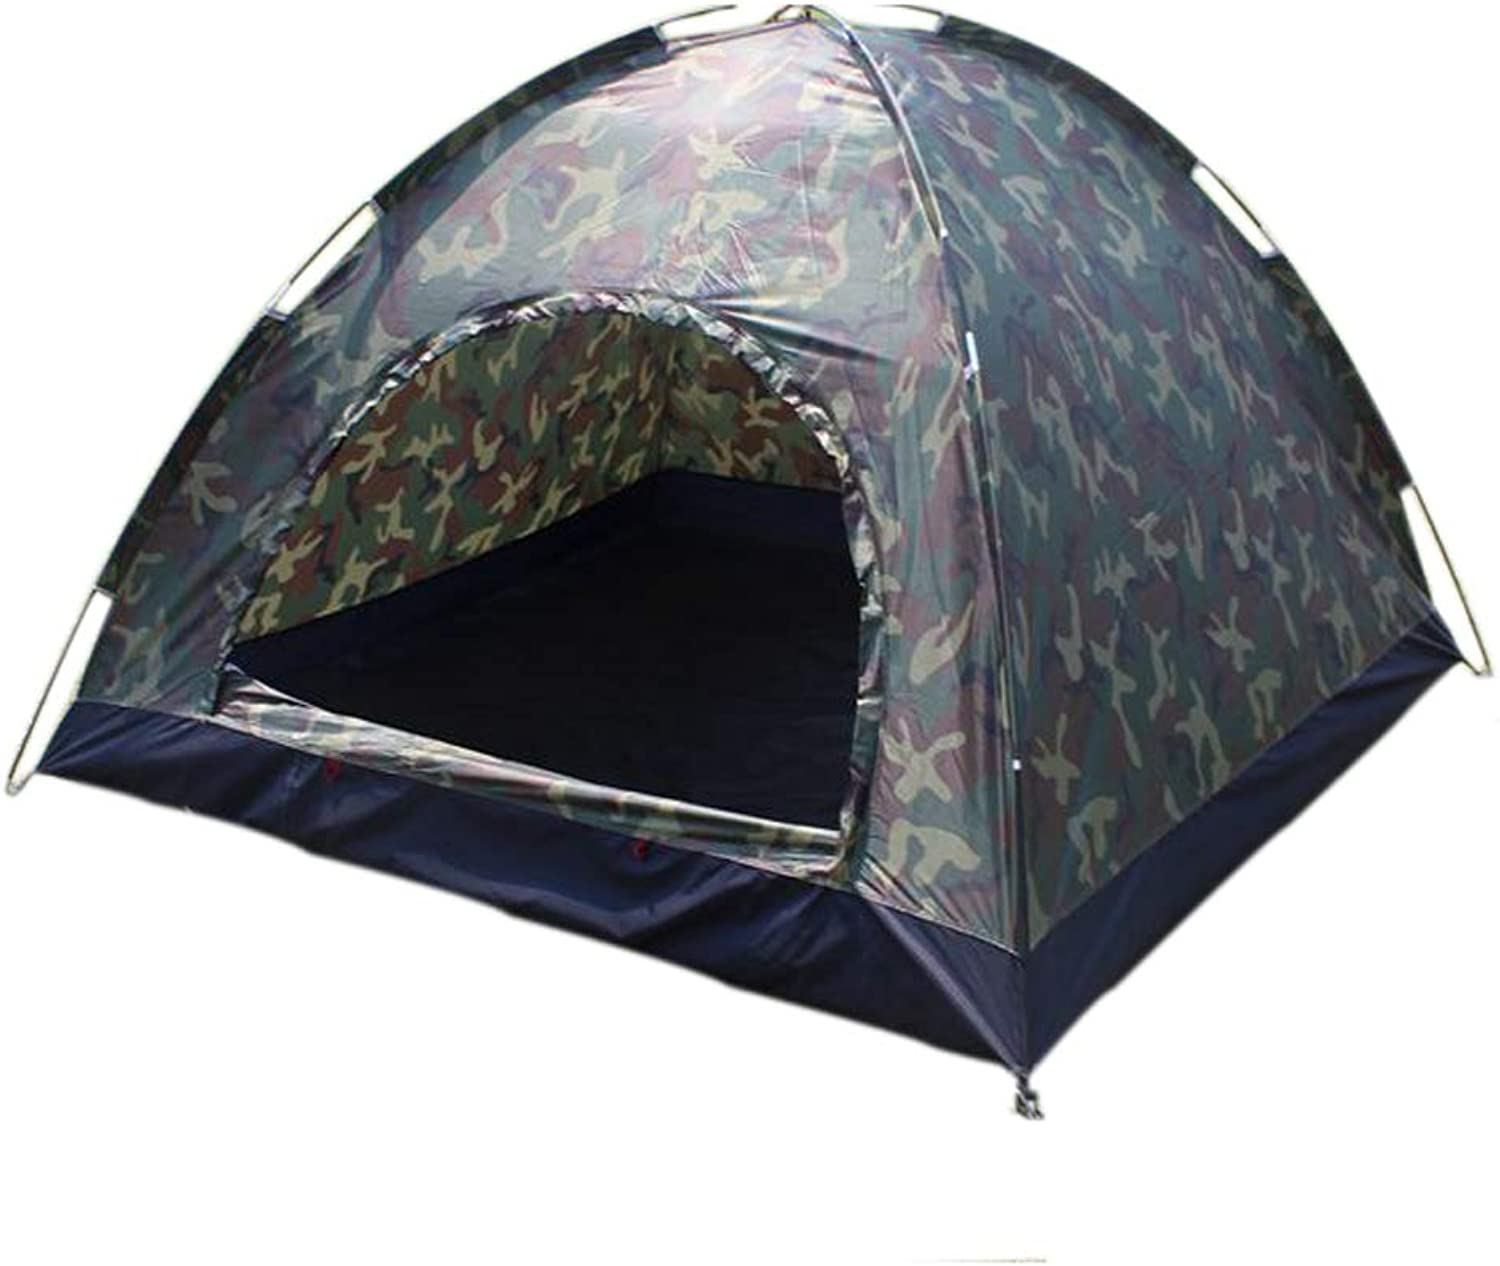 Camouflage Outdoor Tent, Travel Rainproof Mosquito Net, Oxford Waterproof Camping Tent 34 People, Tent and Camping Beach